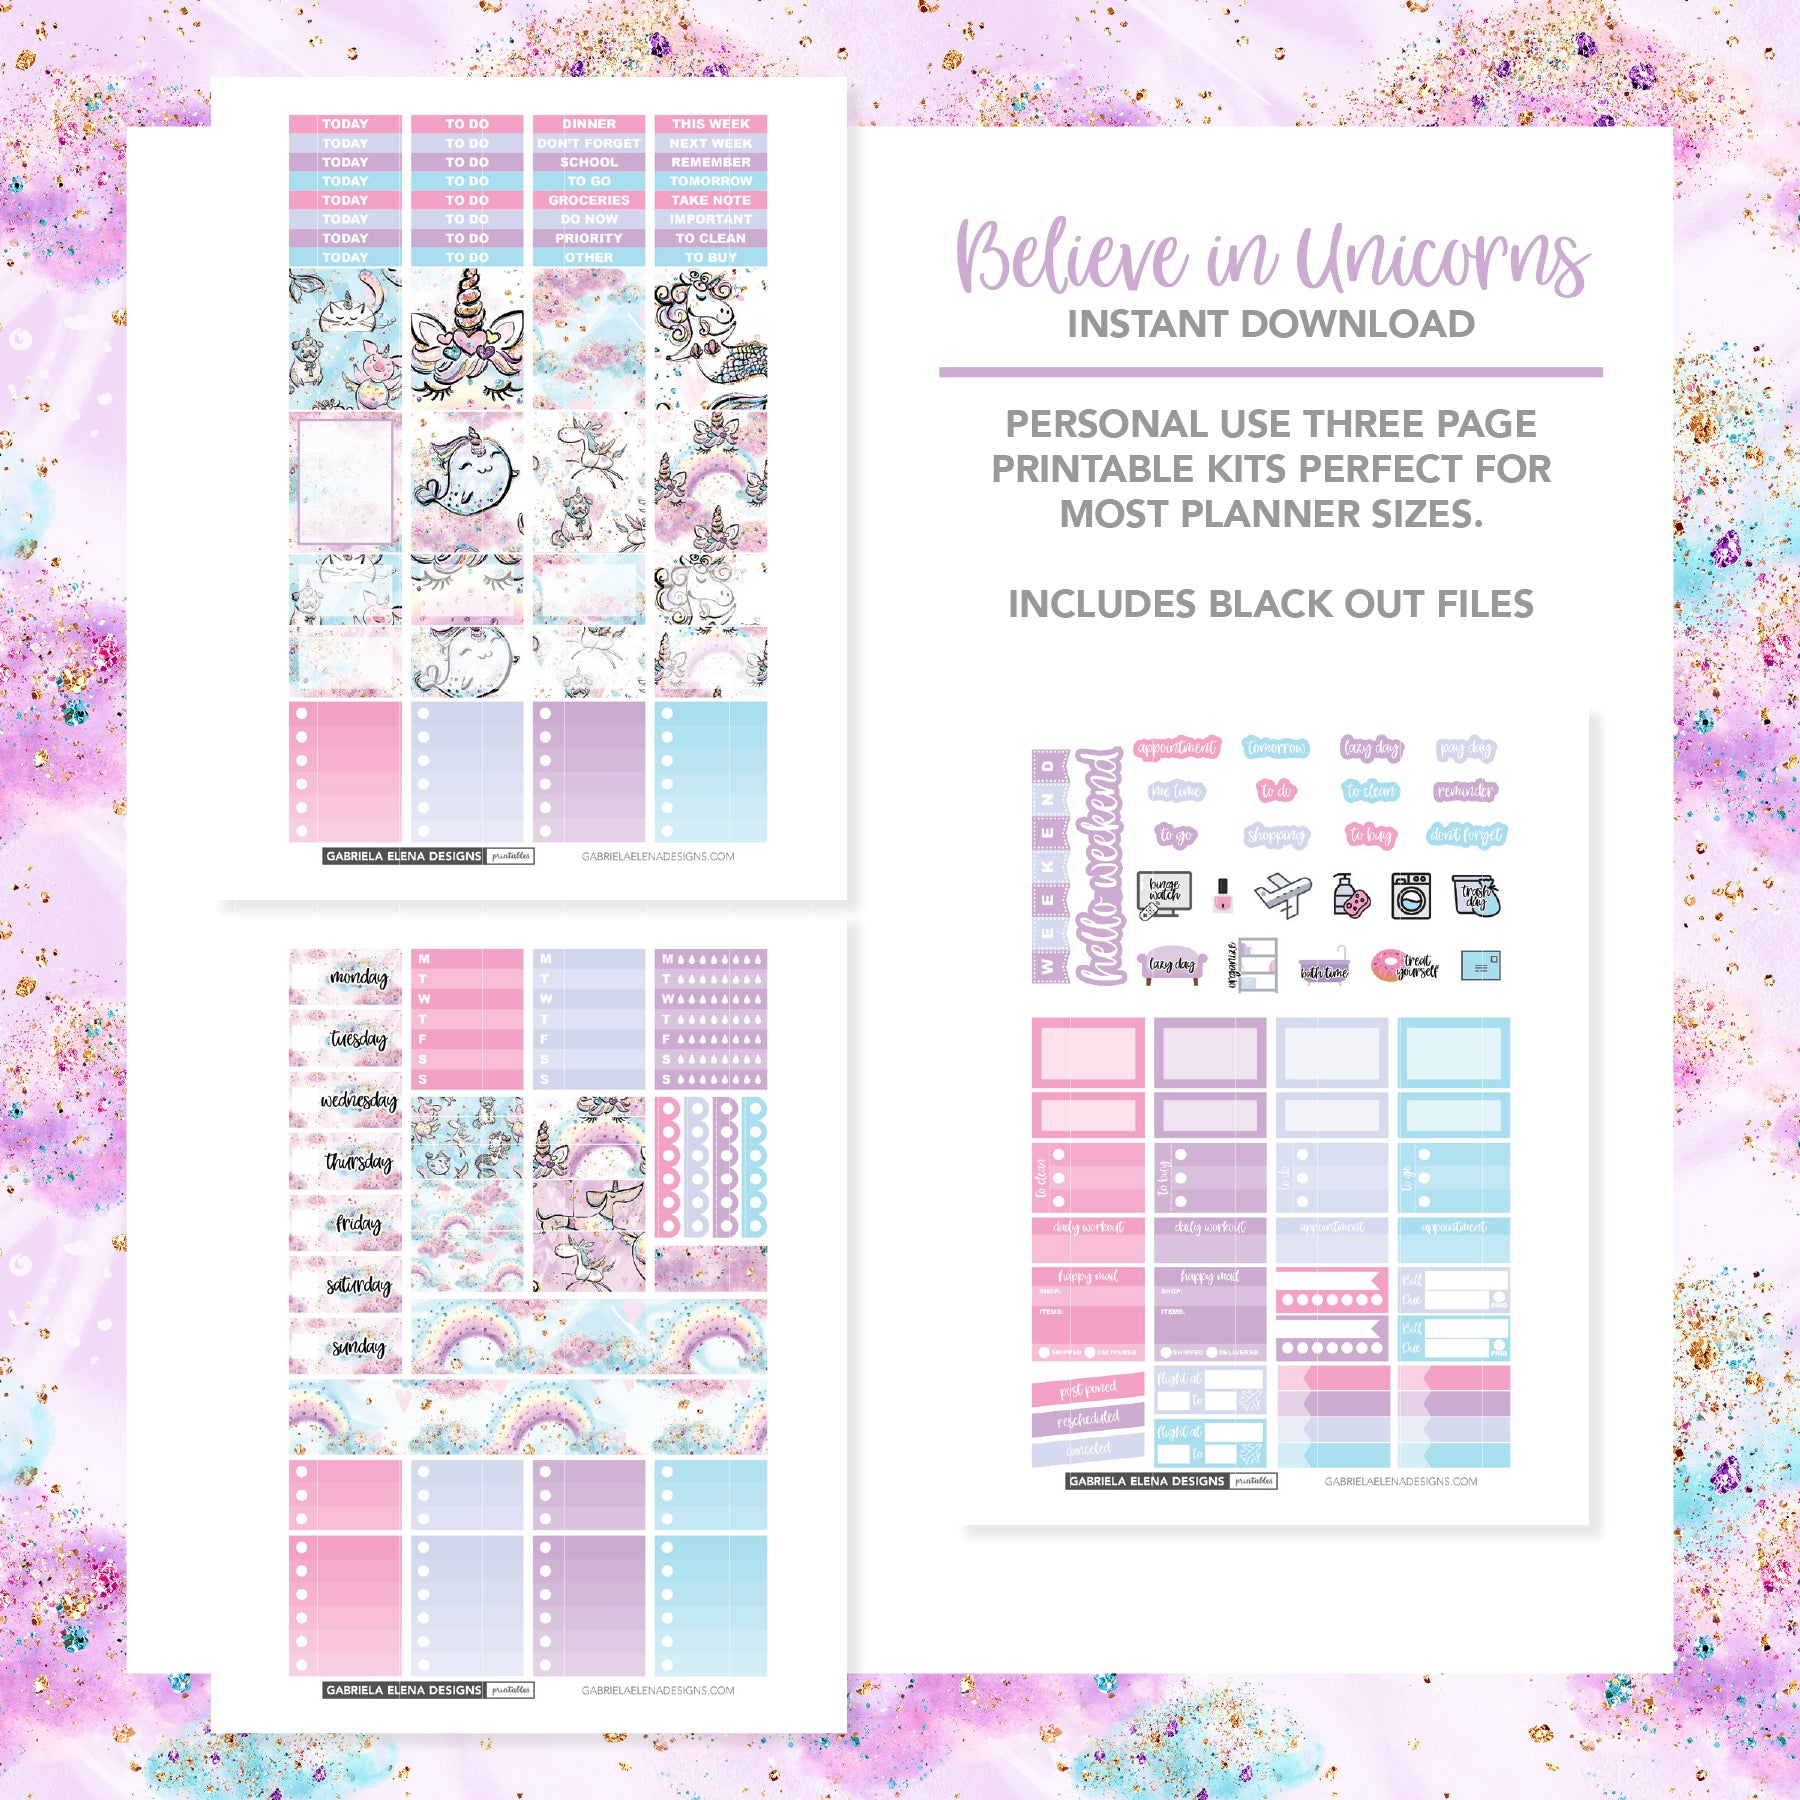 VERTICAL Printable / Instant Download / Believe in Unicorns